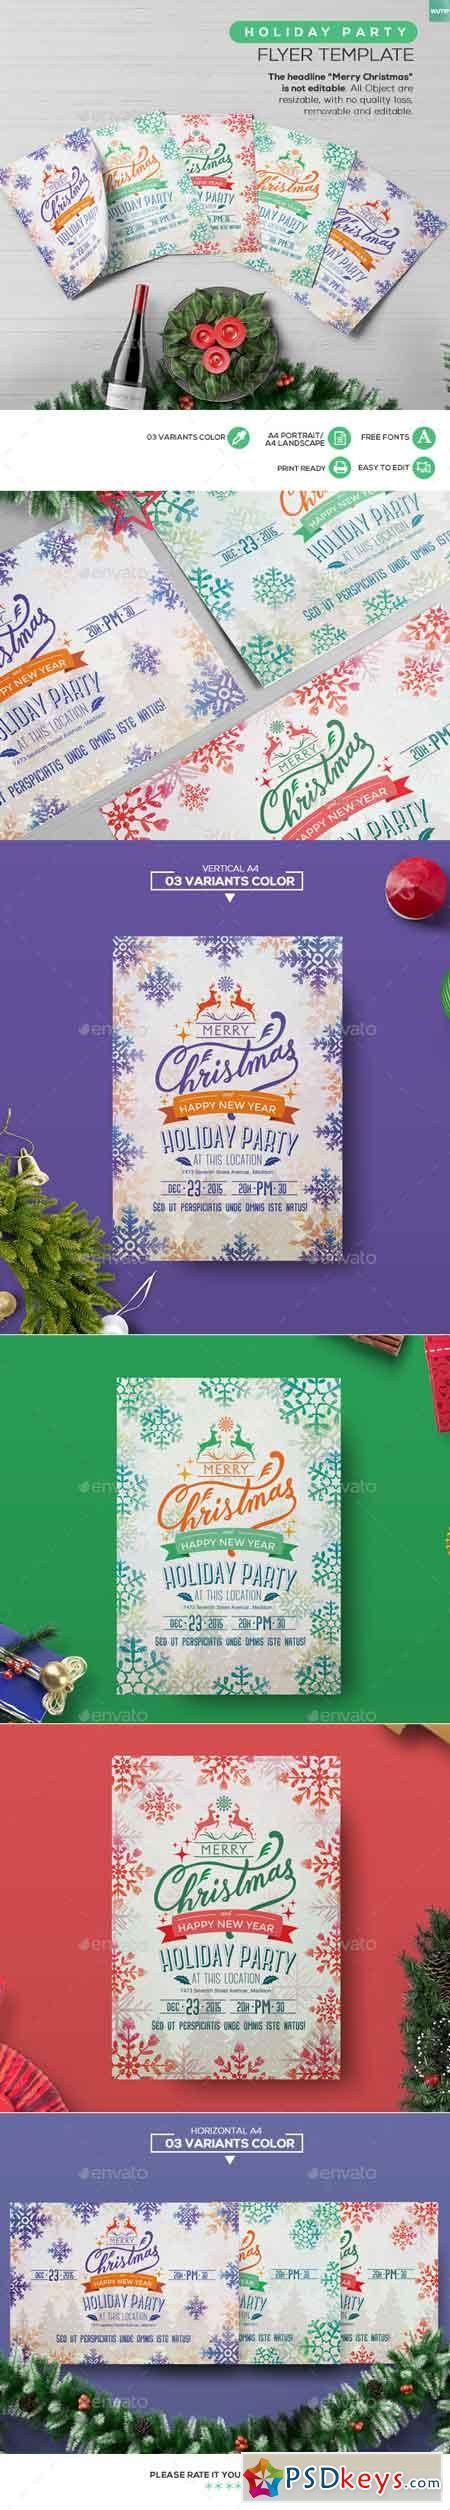 Holiday Party Flyer Template 13561858